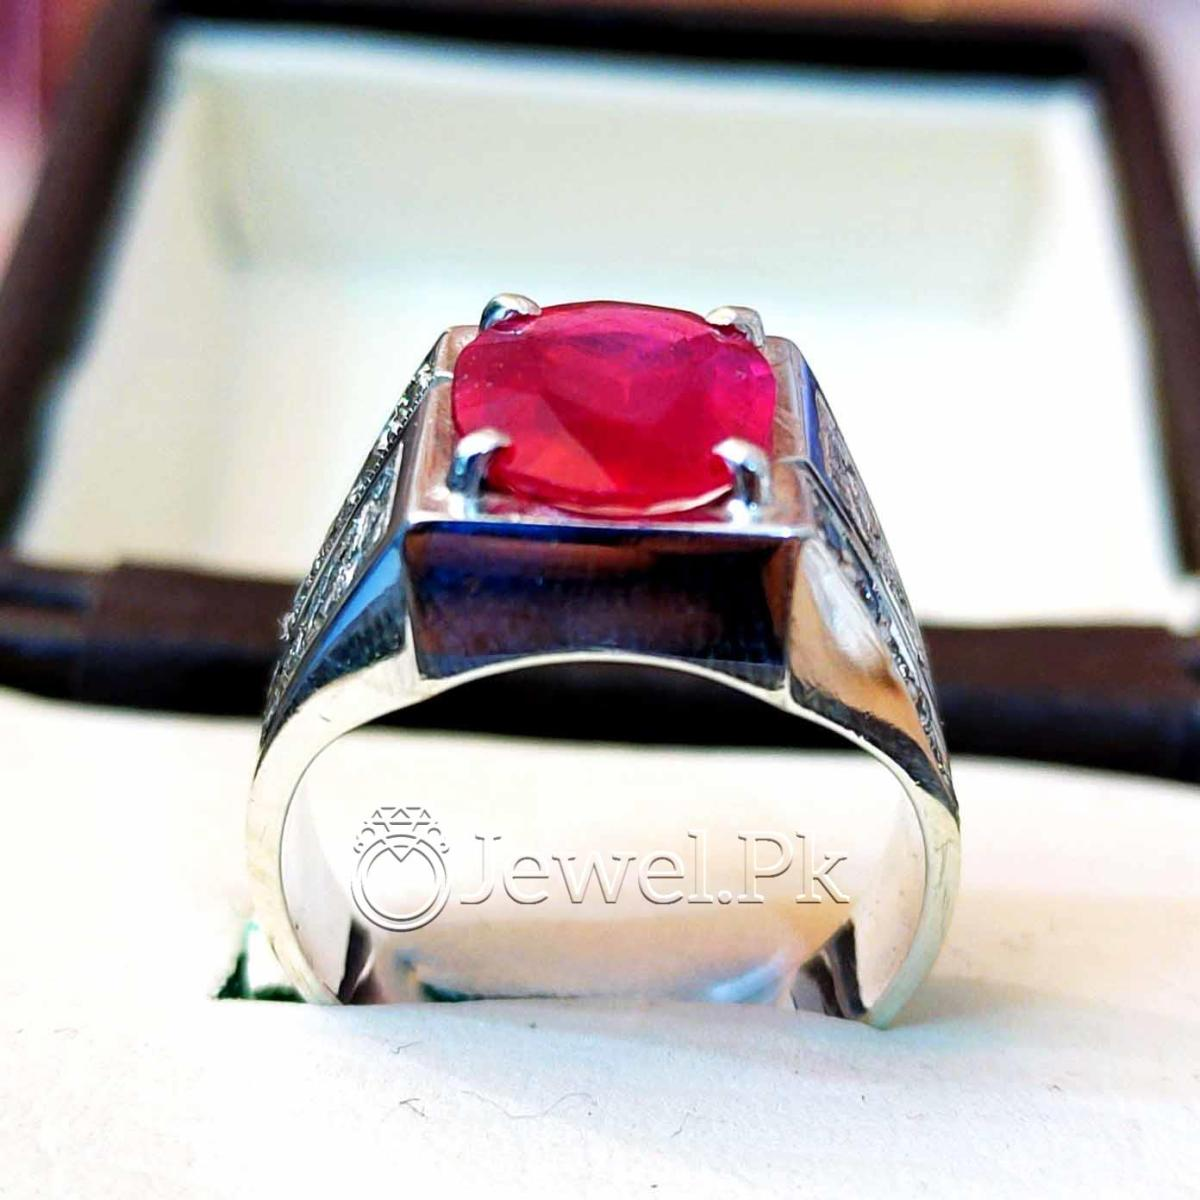 Natural Ruby Yaqoot Ring 925 Silver Handmade 2 natural gemstones pakistan + 925 silver jewelry online